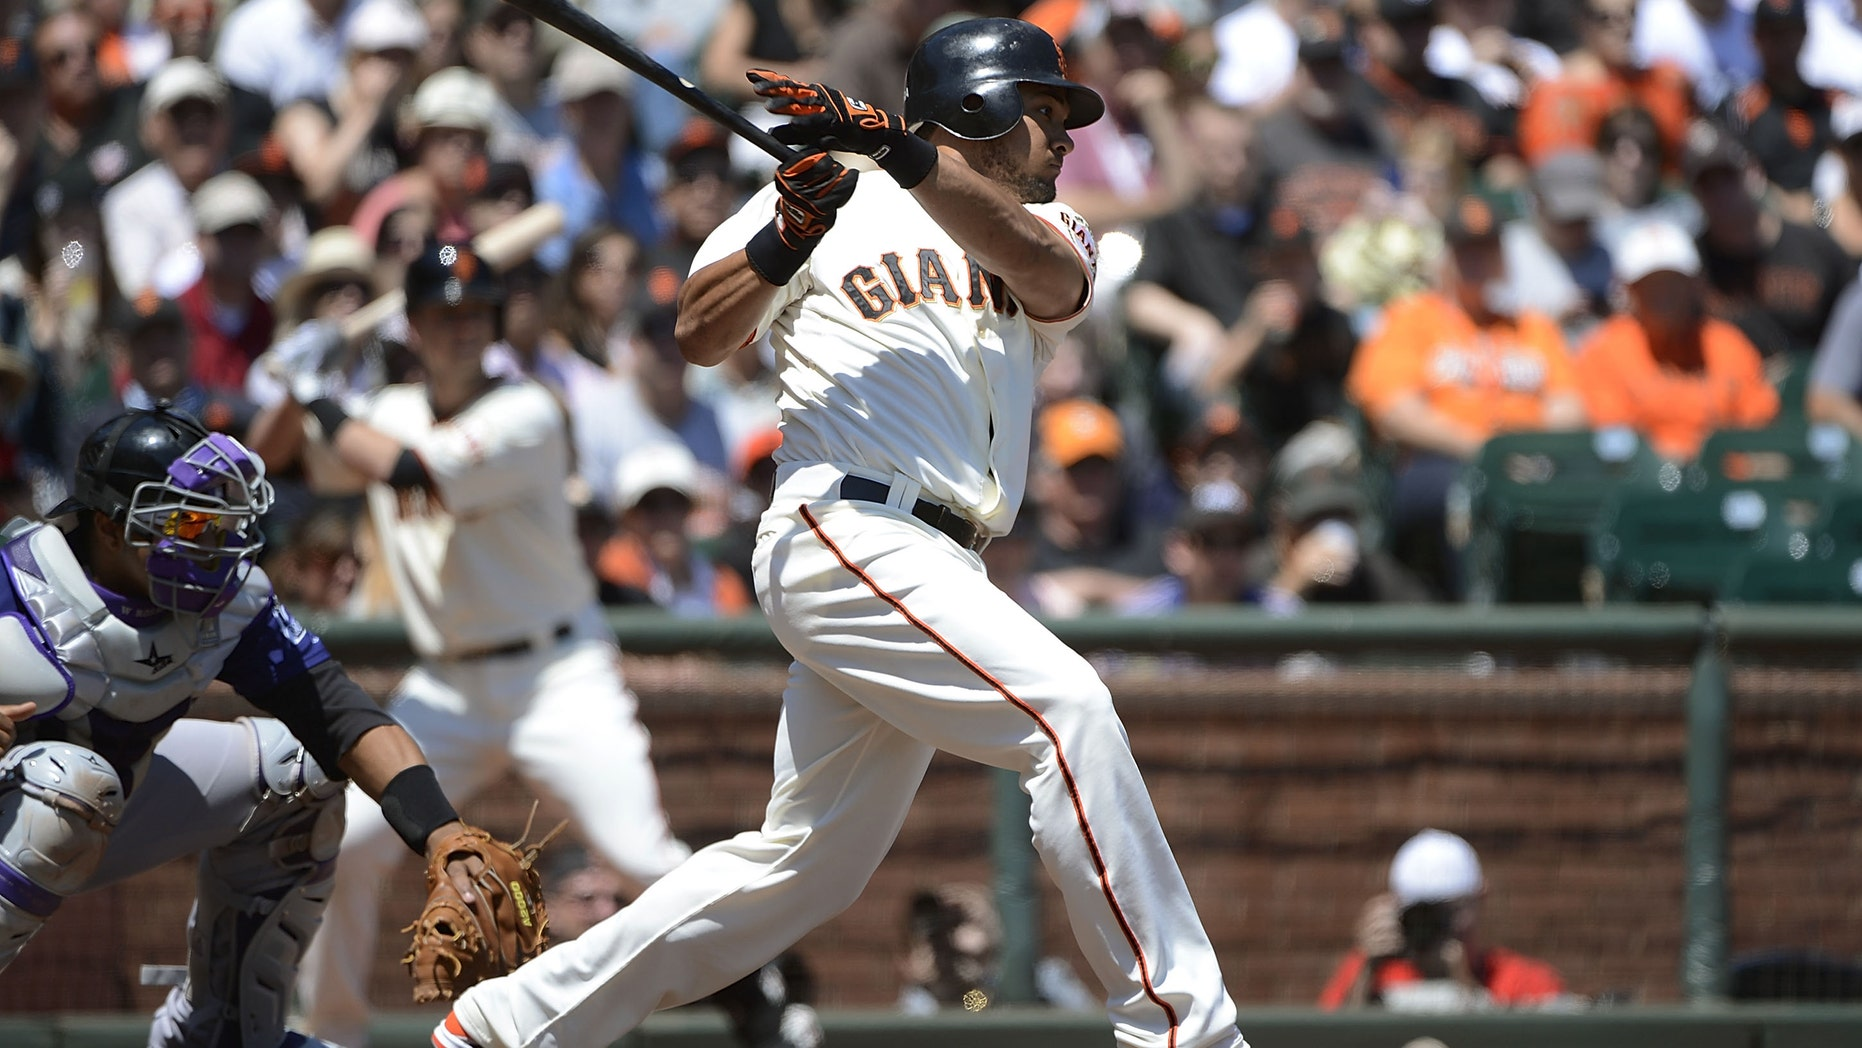 SAN FRANCISCO, CA - AUGUST 12:  Melky Cabrera #53 of the San Francisco Giants hits a two-run single driving in Angel Pagan #16 and Marco Scutaro #19 in the first inning against the Colorado Rockies at AT&T Park on August 12, 2012 in San Francisco, California.  (Photo by Thearon W. Henderson/Getty Images)